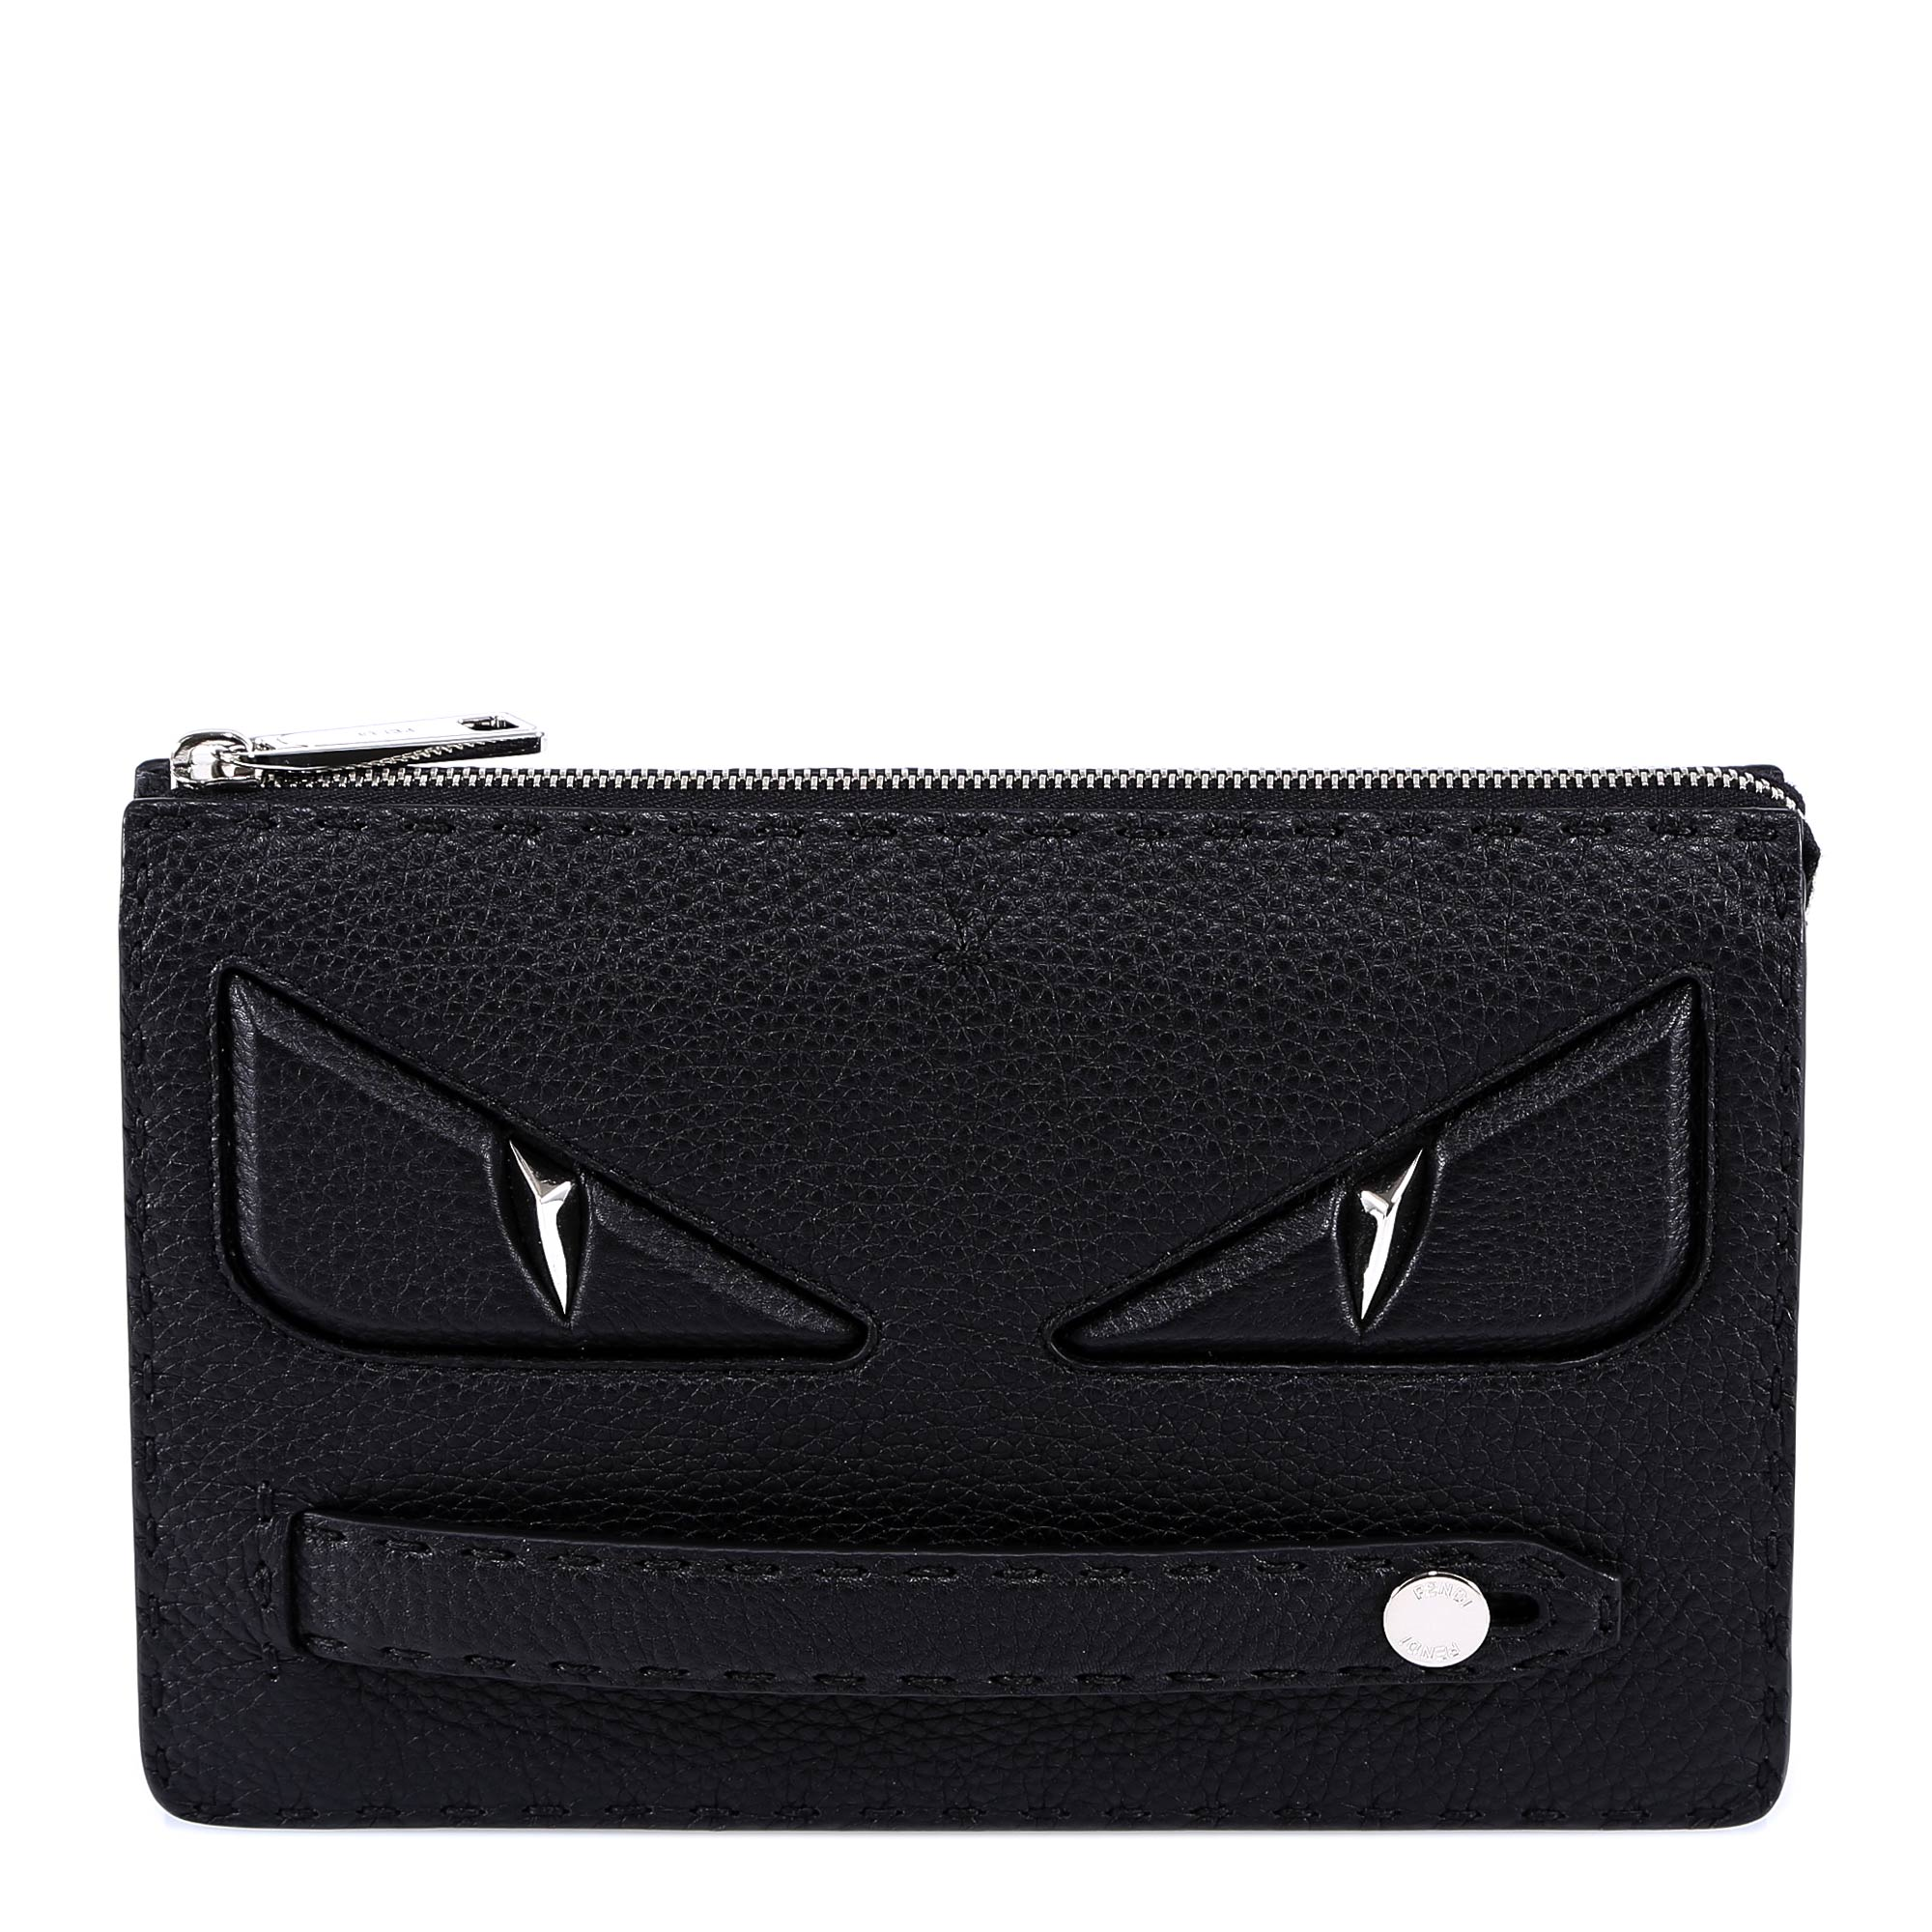 e86f5dc8e1c5 Fendi Bag Bugs Clutch Bag In Black